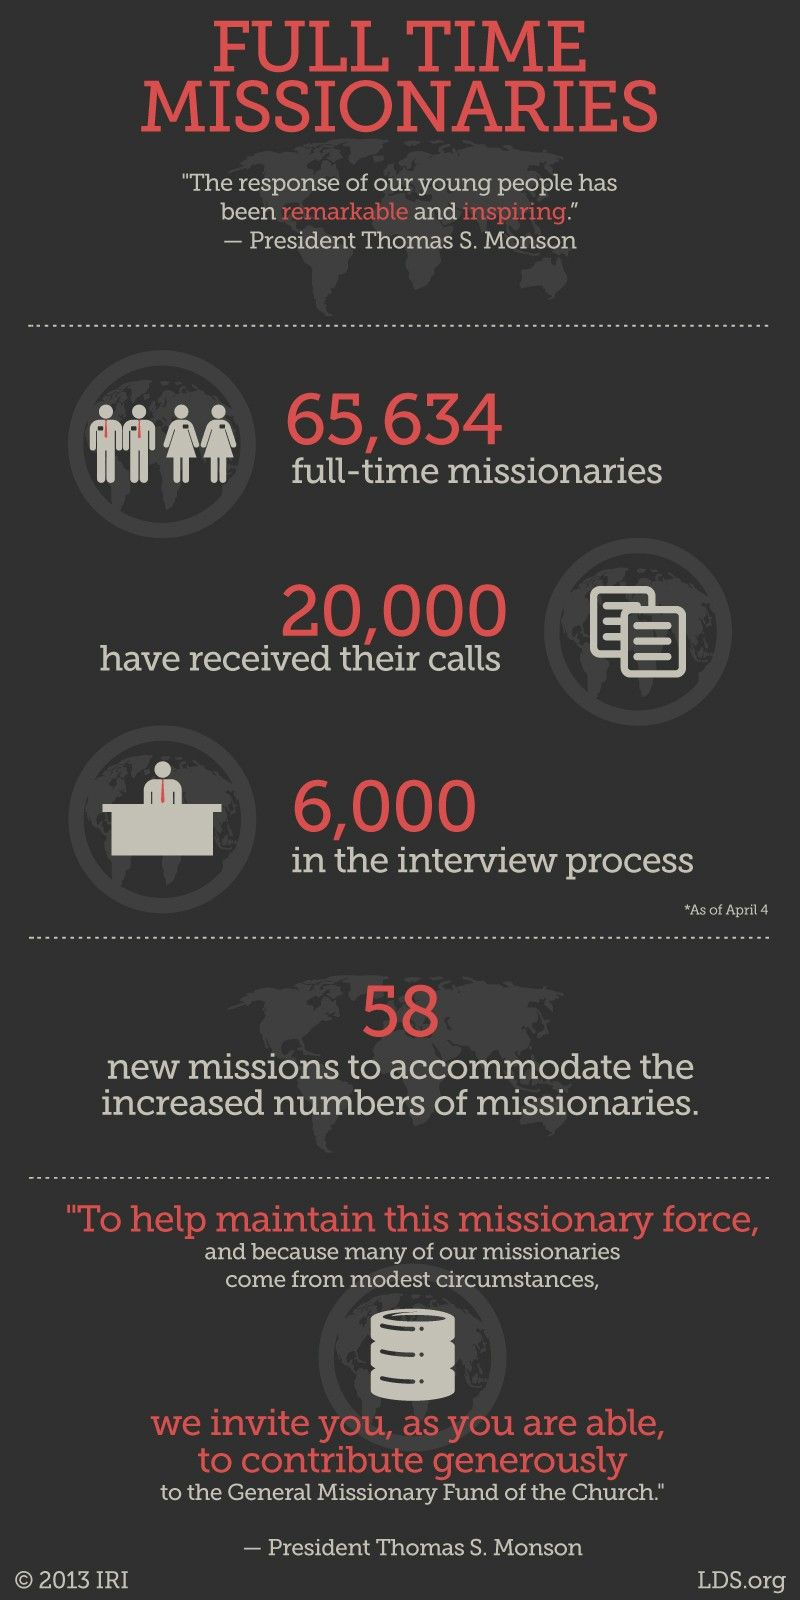 """""""The response of our young people has been remarkable and inspiring. As of April 4—two days ago—we have 65,634 full-time missionaries serving, with over 20,000 more who have received their calls but who have not yet entered a missionary training center and over 6,000 more in the interview process with their bishops and stake presidents. It has been made necessary for us to create 58 new missions to accommodate the increased number of missionaries. To help maintain this missionary force, and because many of our missionaries come from modest circumstances, we invite you, as you are able, to contribute generously to the General Missionary Fund of the Church.""""—President Thomas S. Monson, """"Welcome to Conference"""""""